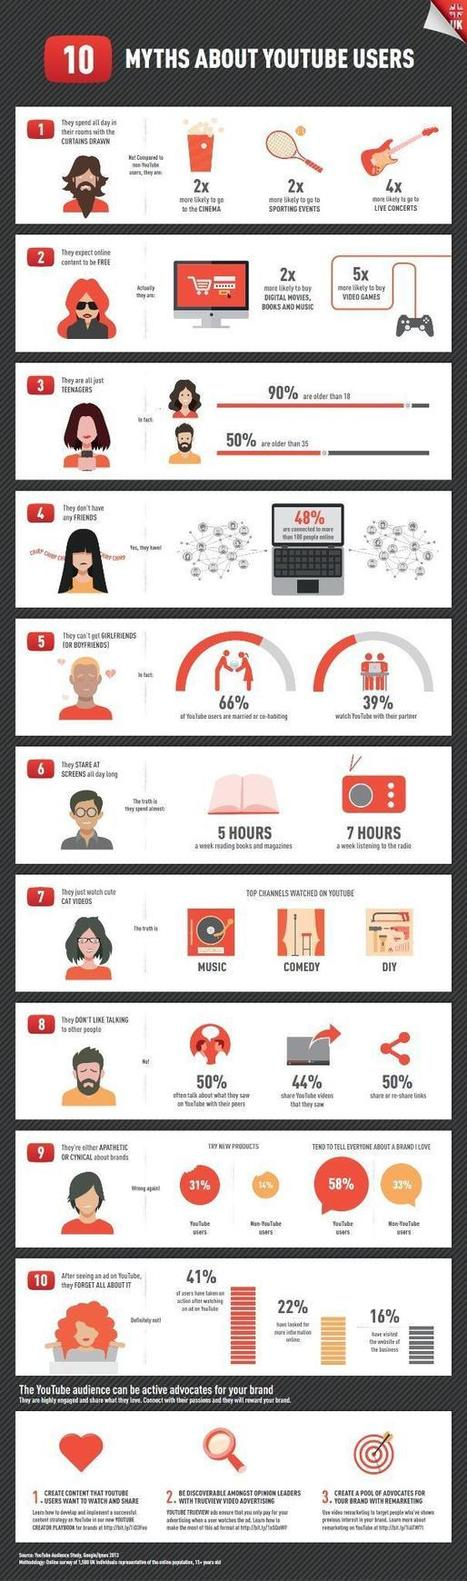 Infographie : 10 mythes à propos des utilisateurs de Youtube | RSE, community manager, collaboration | Scoop.it